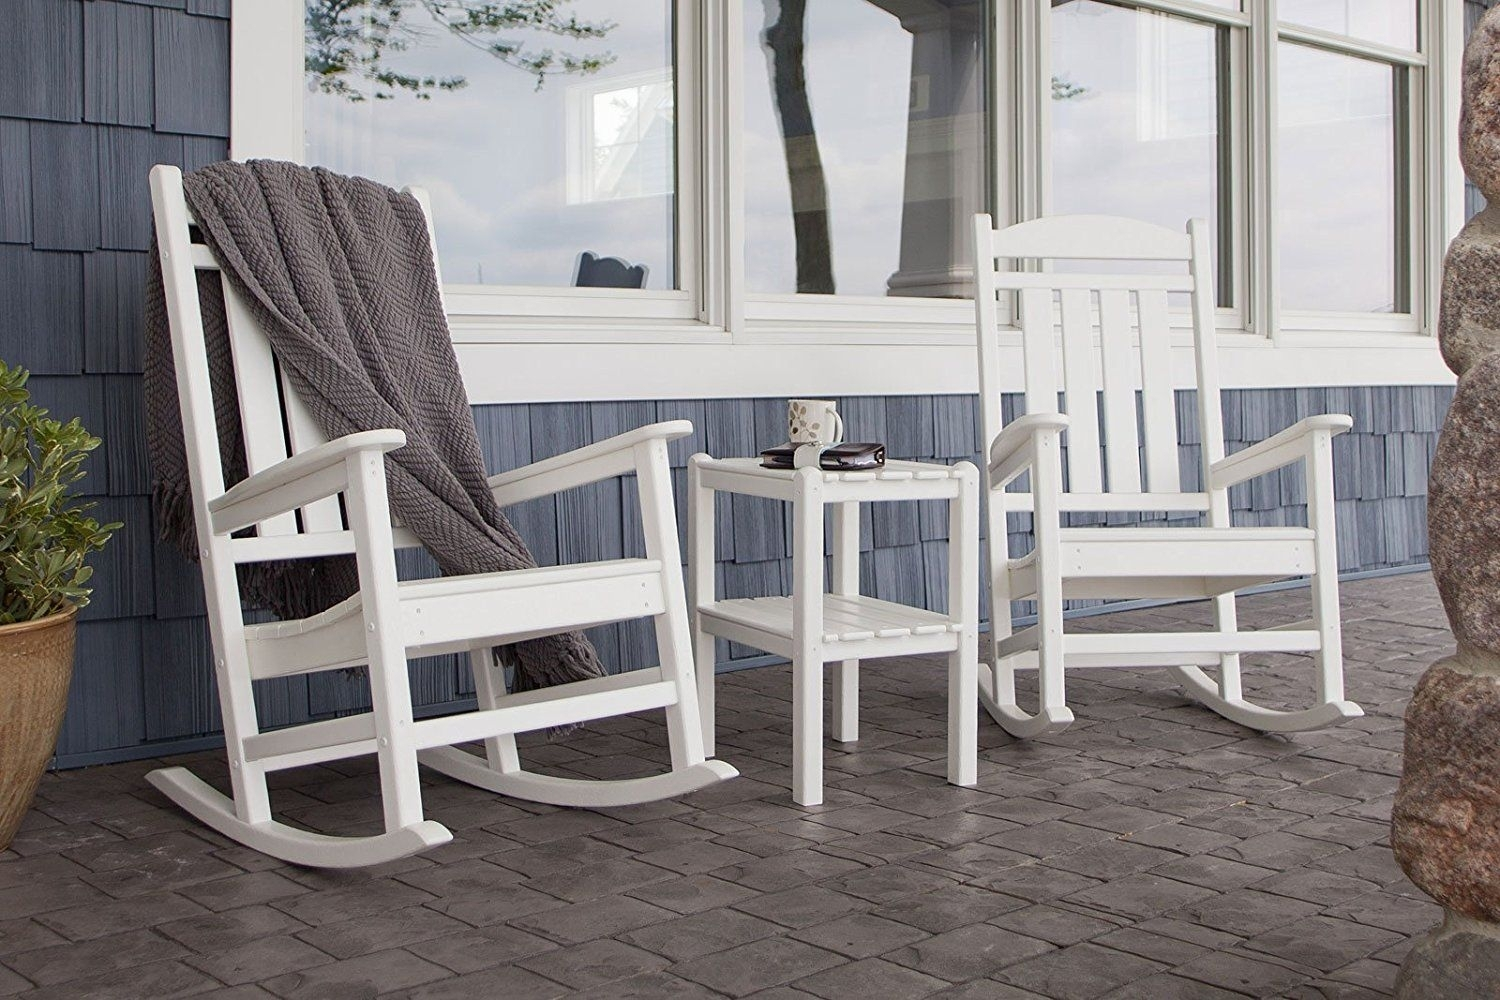 Amazon : Polywood R100Wh Presidential Rocker, White : Rocking Intended For Outdoor Rocking Chairs With Table (View 1 of 15)